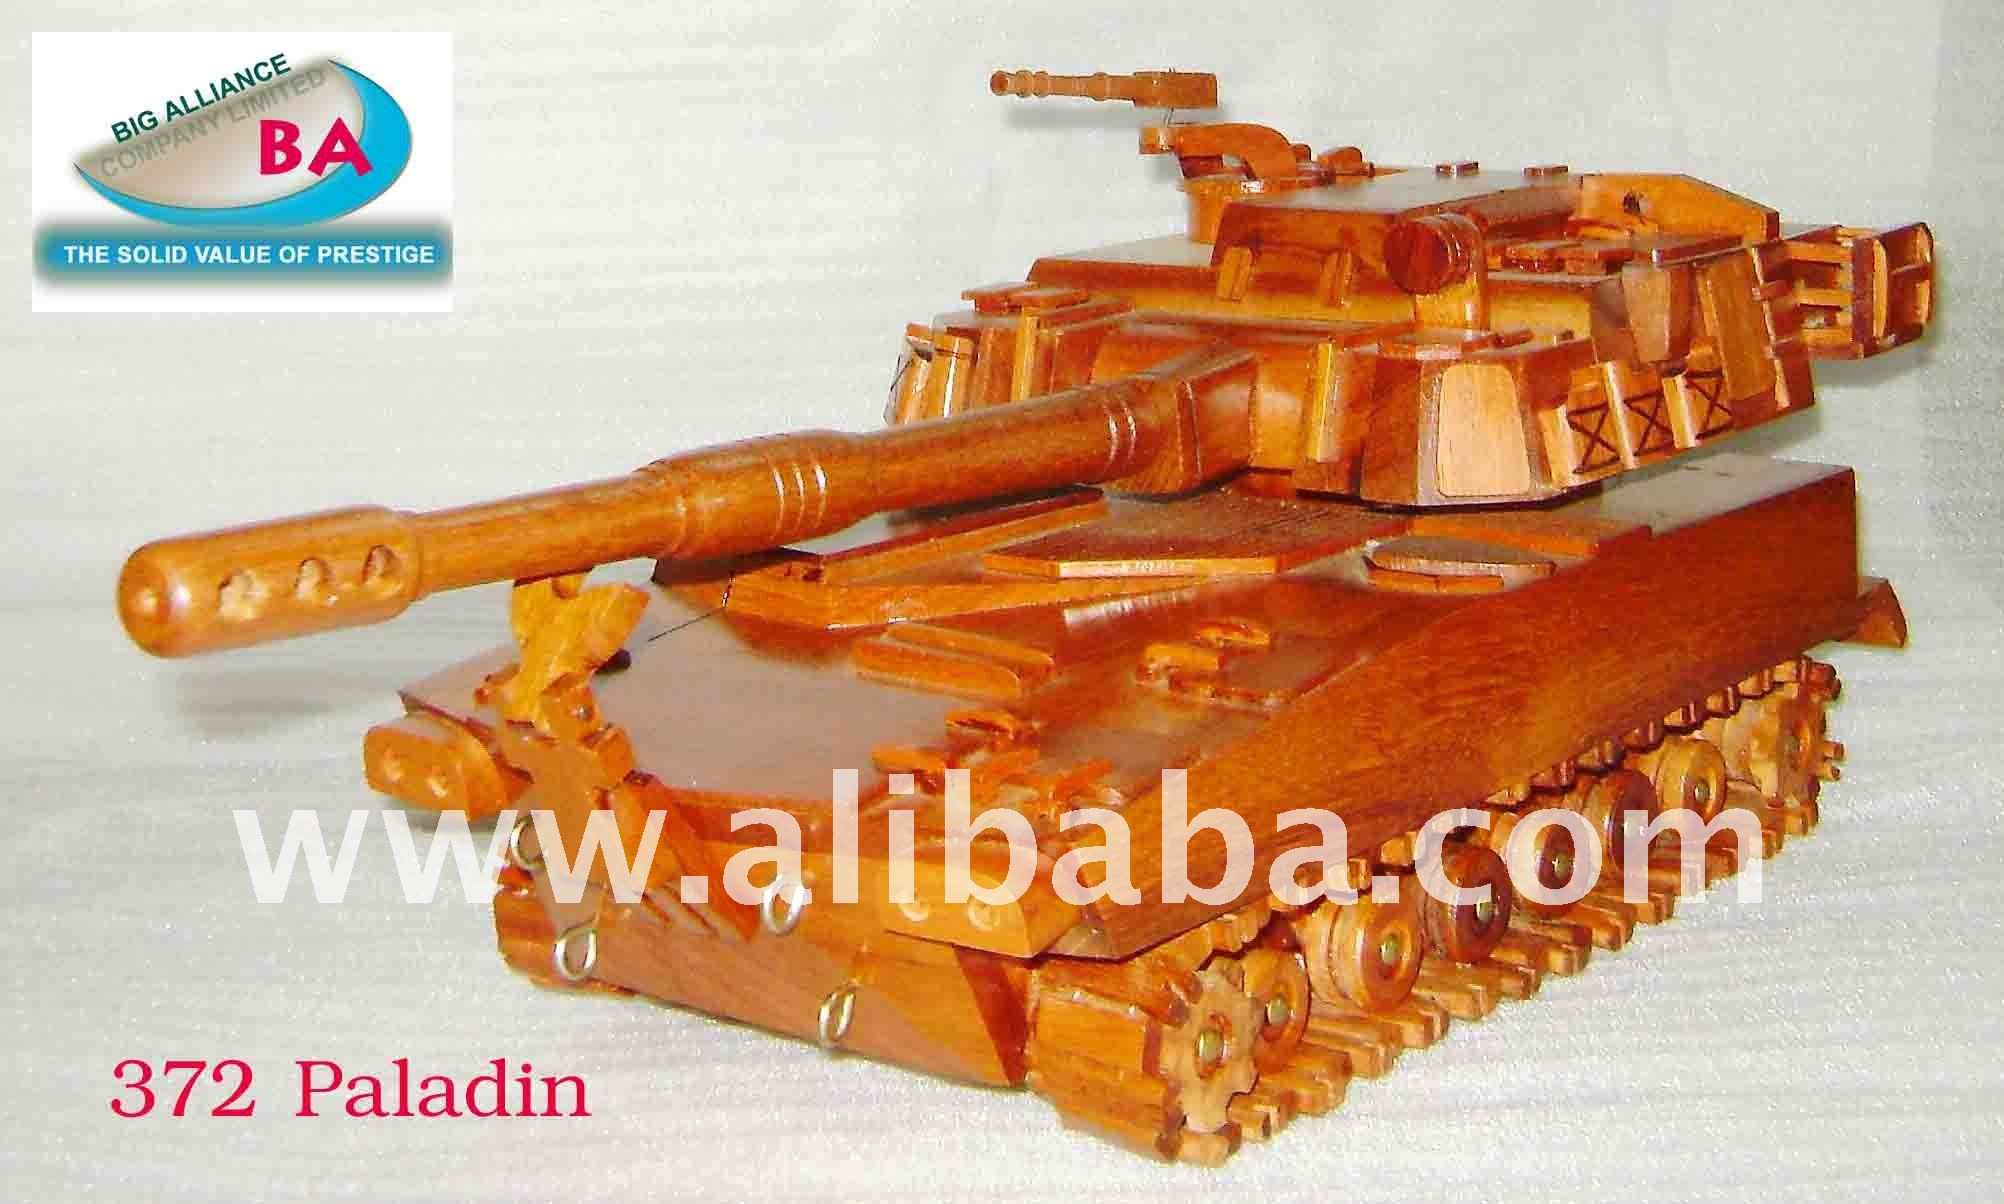 Wooden tank model - 372 Paladin S.P Howitzer